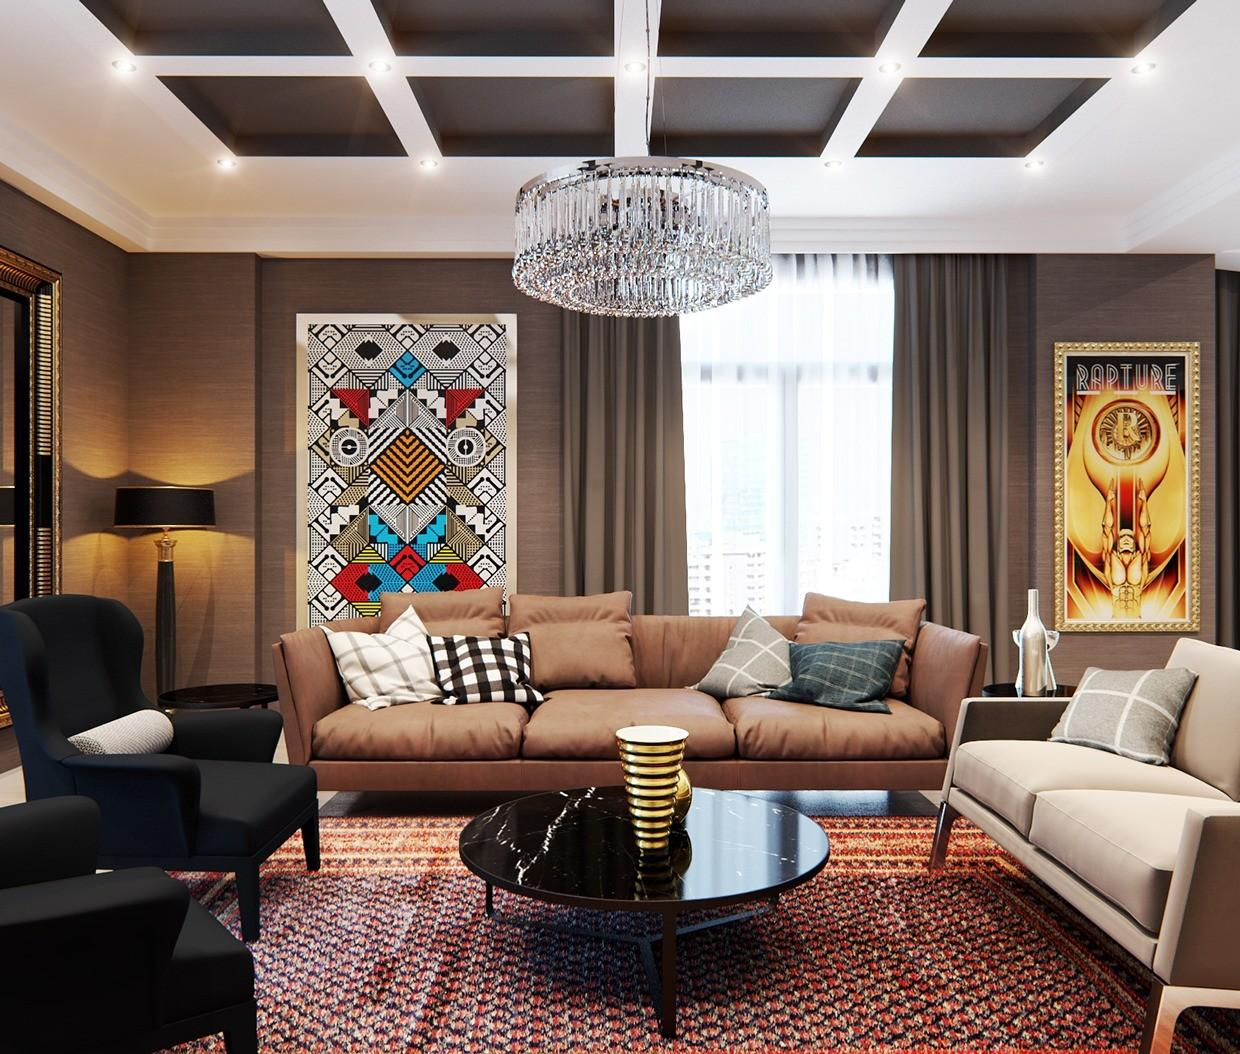 Stylish Apartment Classic Design Features